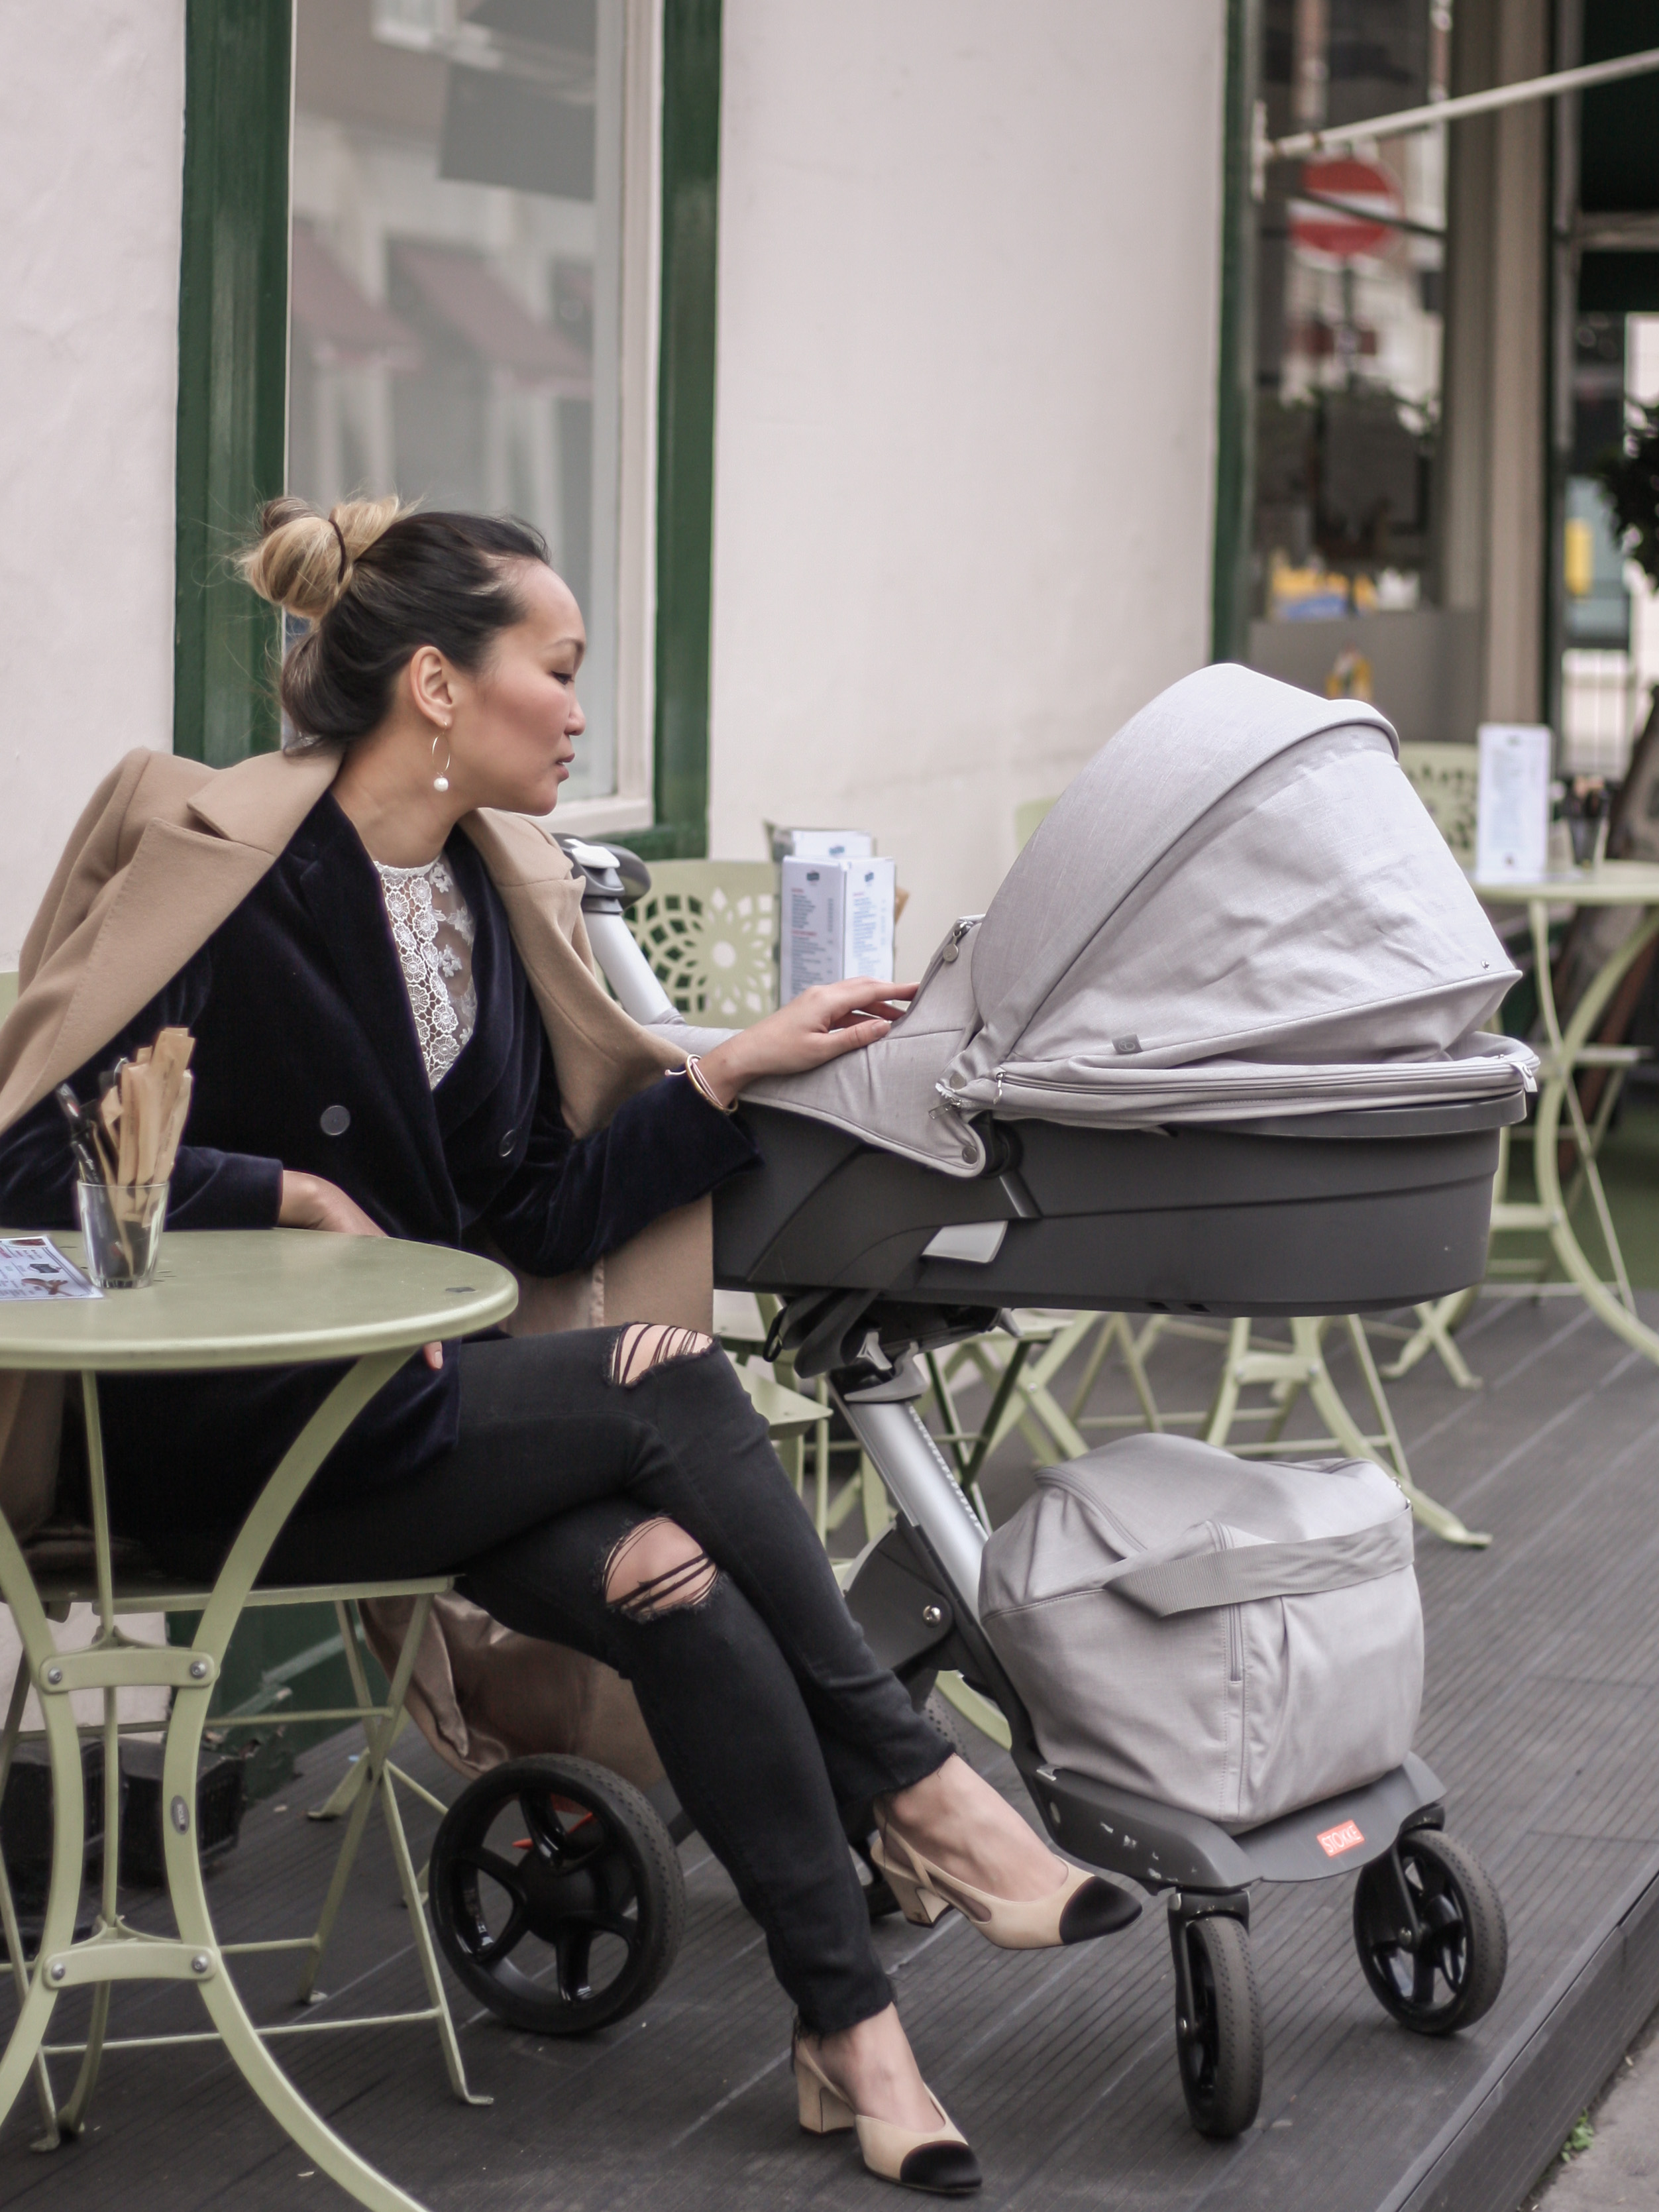 Stokke Stroller Store Why The Stokke Xplory Is The Best Pushchair For London